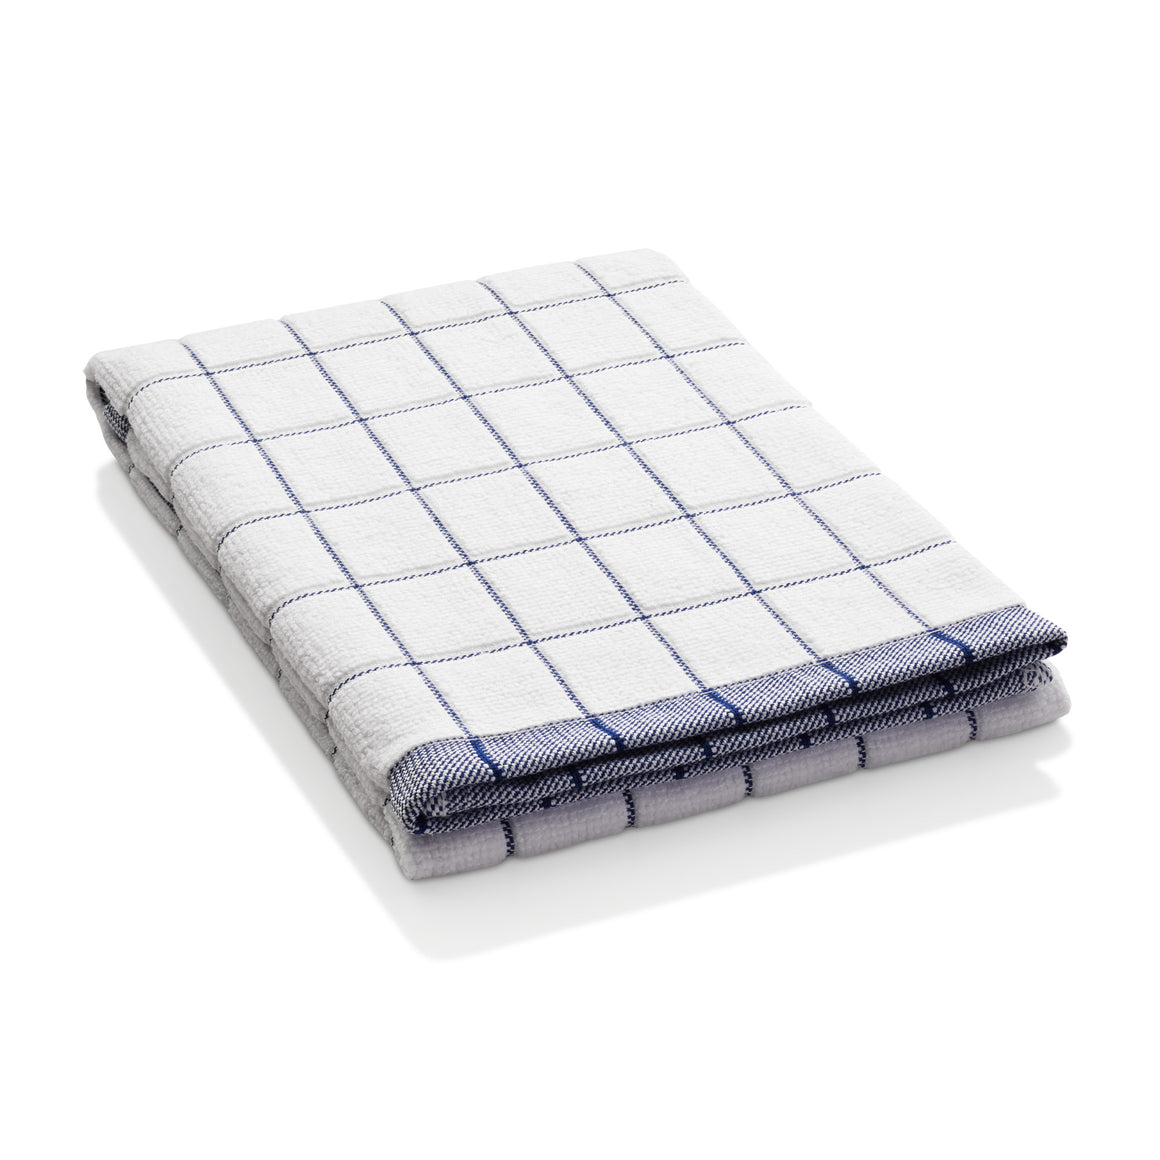 Classic Check Dish Towel - Super-Absorbent, 90% Microfiber & 10% Cotton Blend - Blue Check